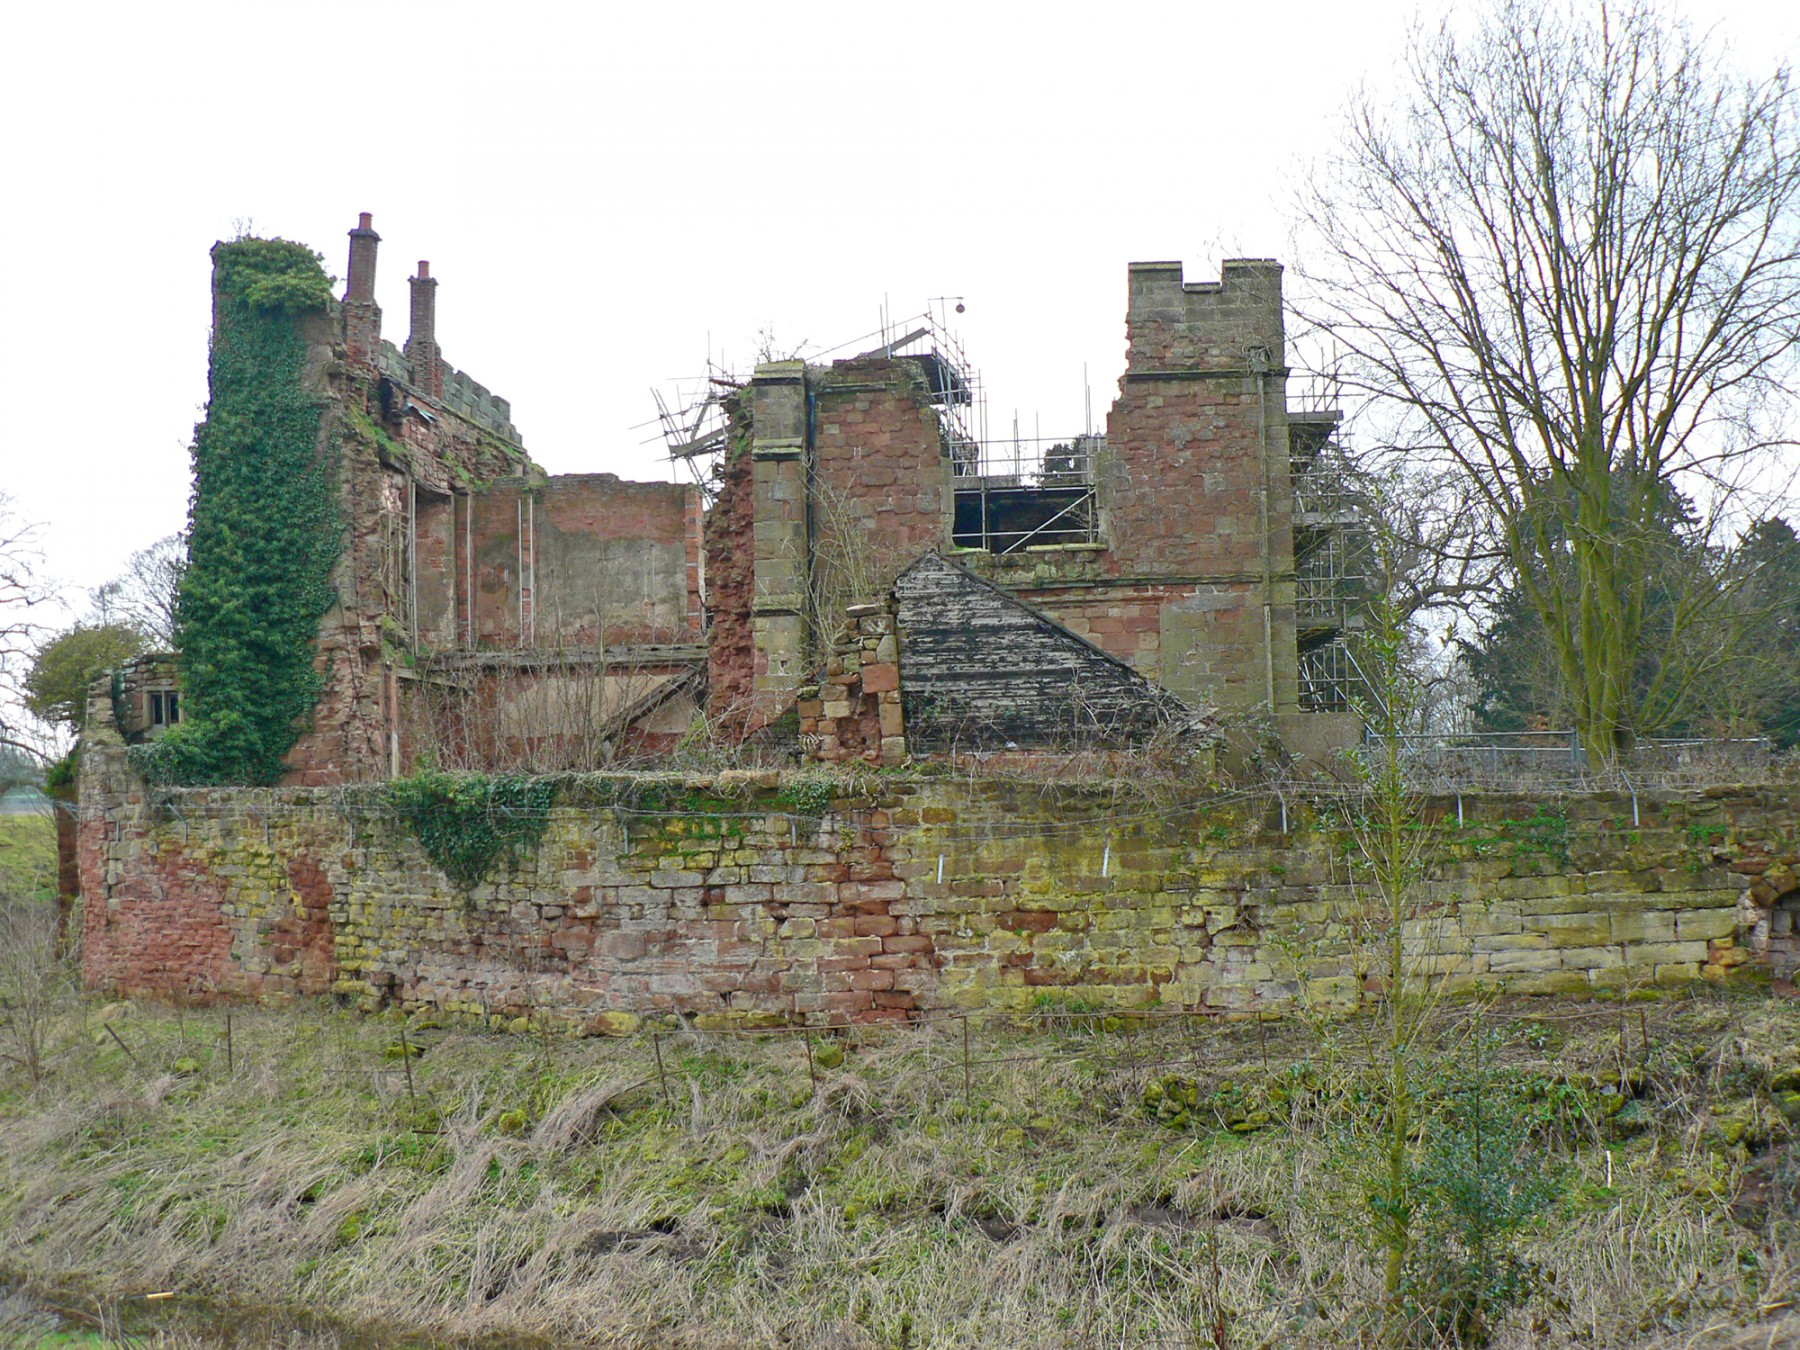 Astley-Castle-competition-accomodation-Nuneaton-Warwickshire-Landmark-trust-English-Heritage-short-list-Jamie-Fobert-architects-site-1